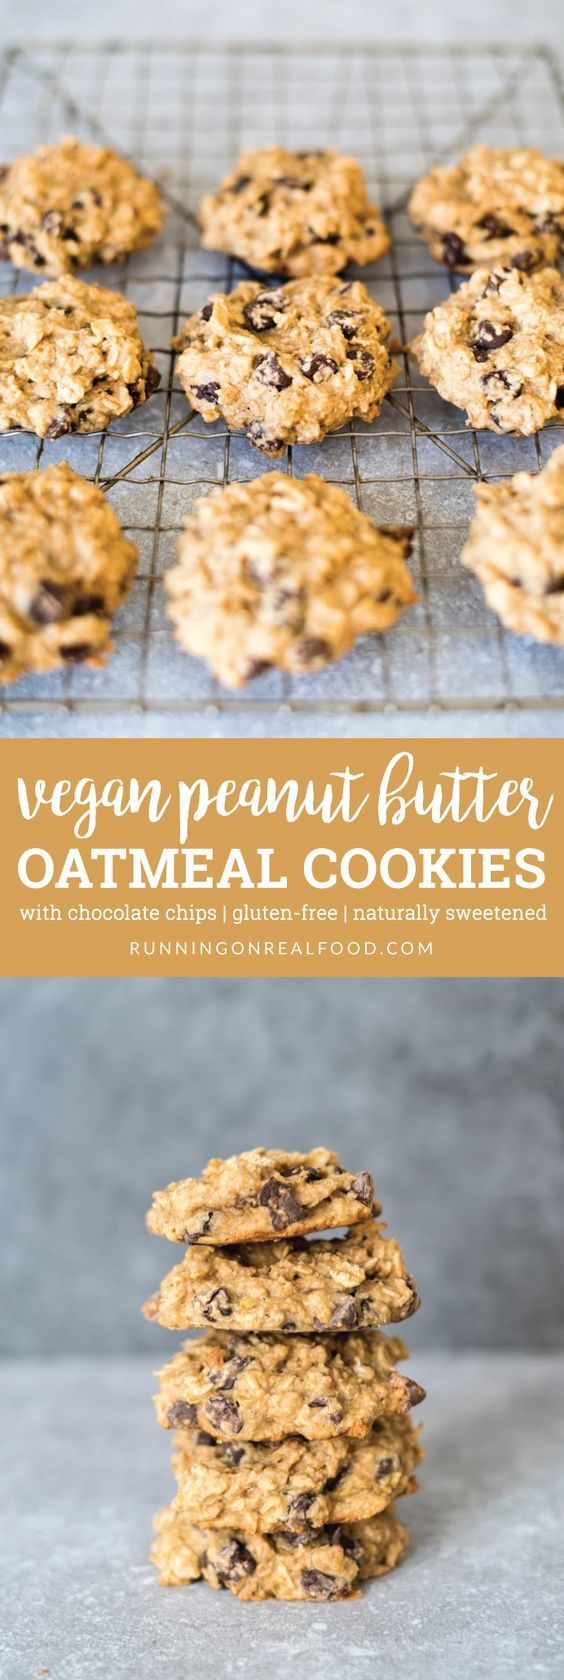 These Vegan Peanut Butter Oatmeal Chocolate Cookies are gluten-free, naturally sweetened, oil-free and easy to make in one bowl. Vegan Peanut Butter Oatmeal Chocolate Chip Cookies https://runningonrealfood.com/vegan-peanut-butter-oatmeal-chocolate-chip-cookies/